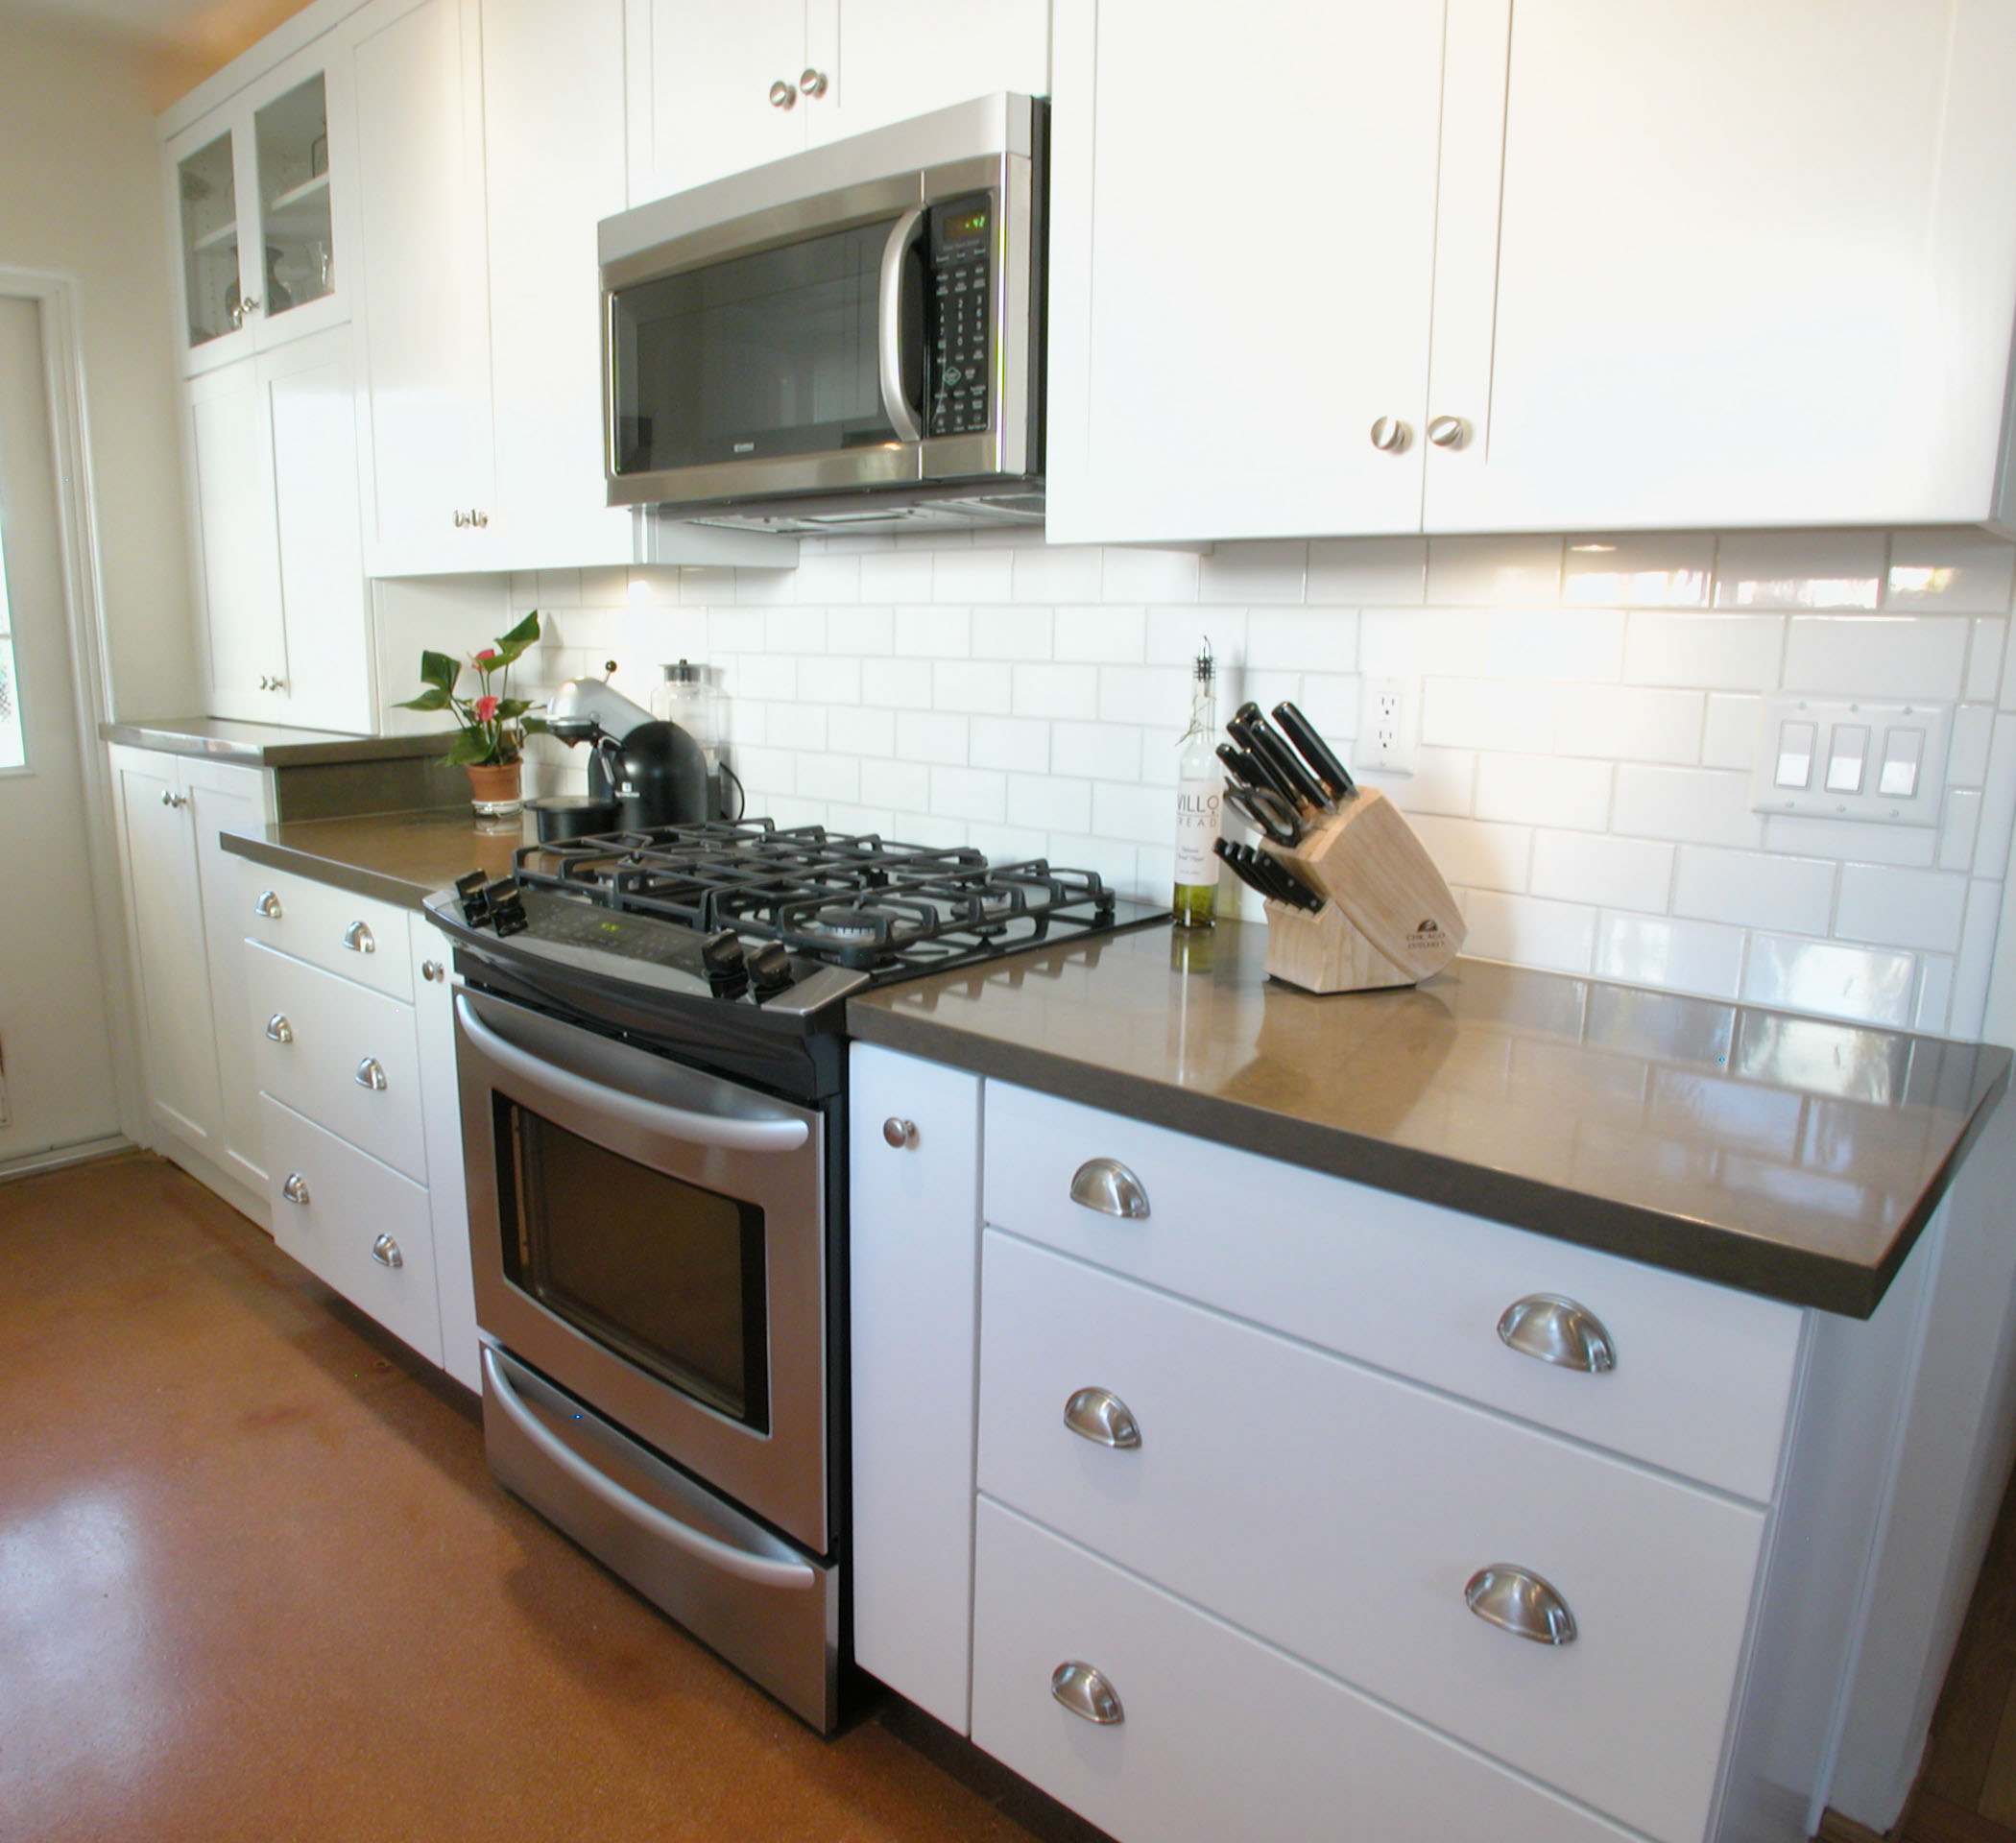 The Best Countertops for Kitchen Cabinets Interior Taste to Go with White Cabinet